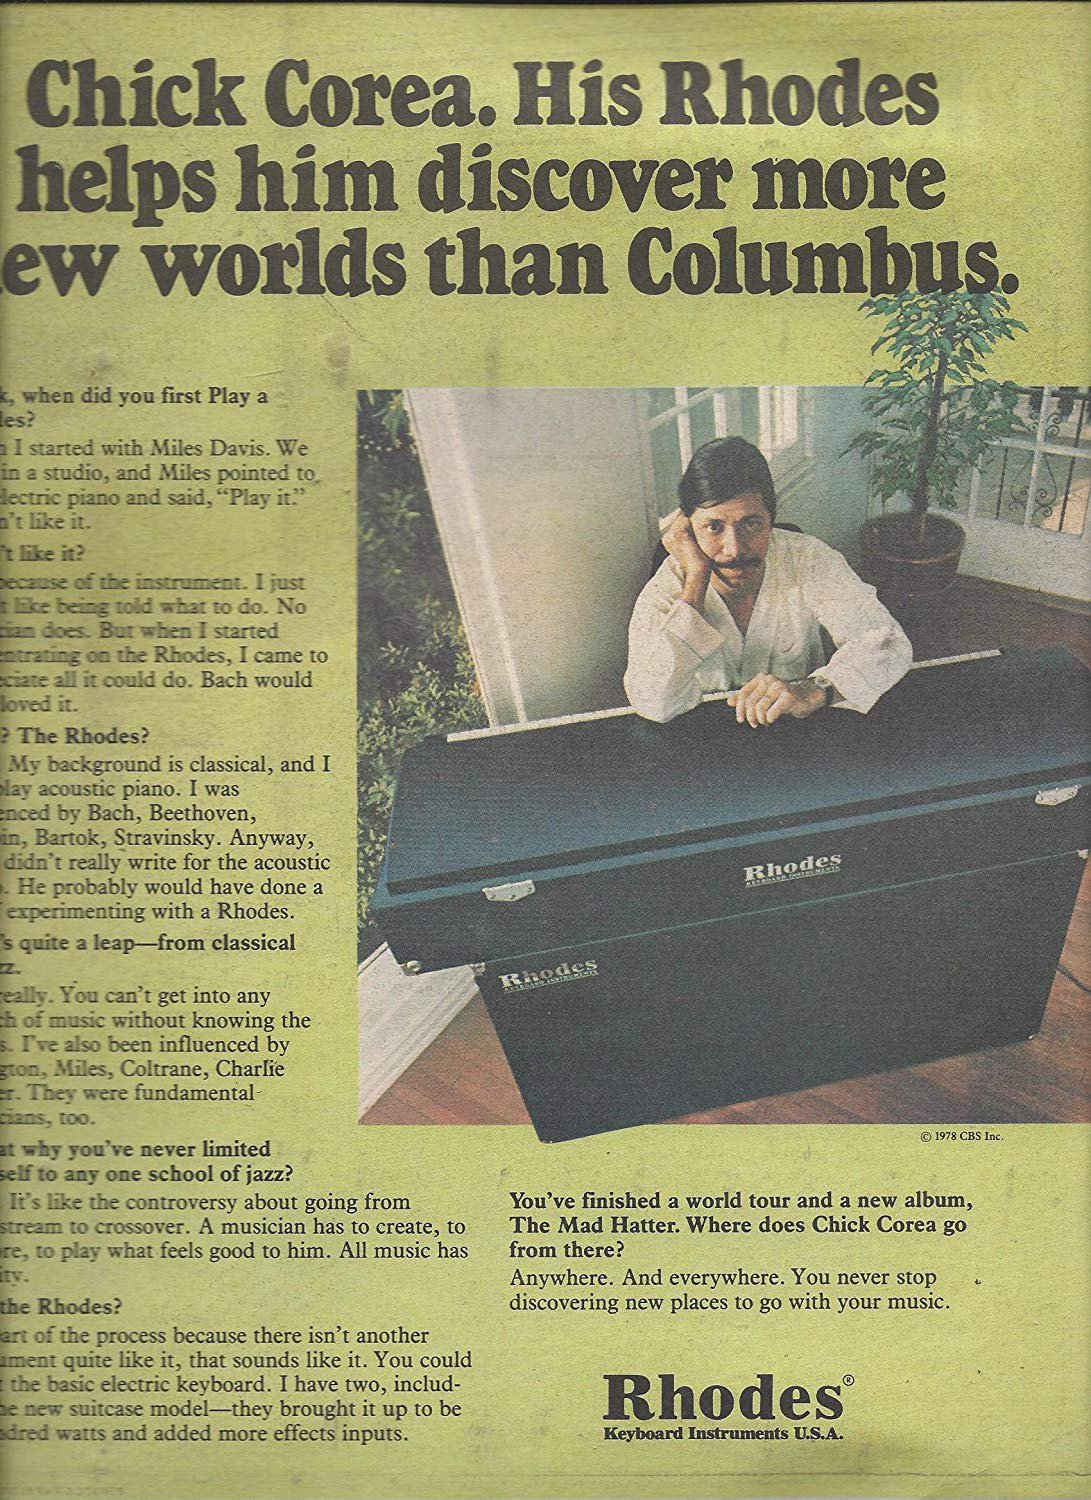 Magazine Paper Print Ad With Chick Corea For Rhodes Keyboards